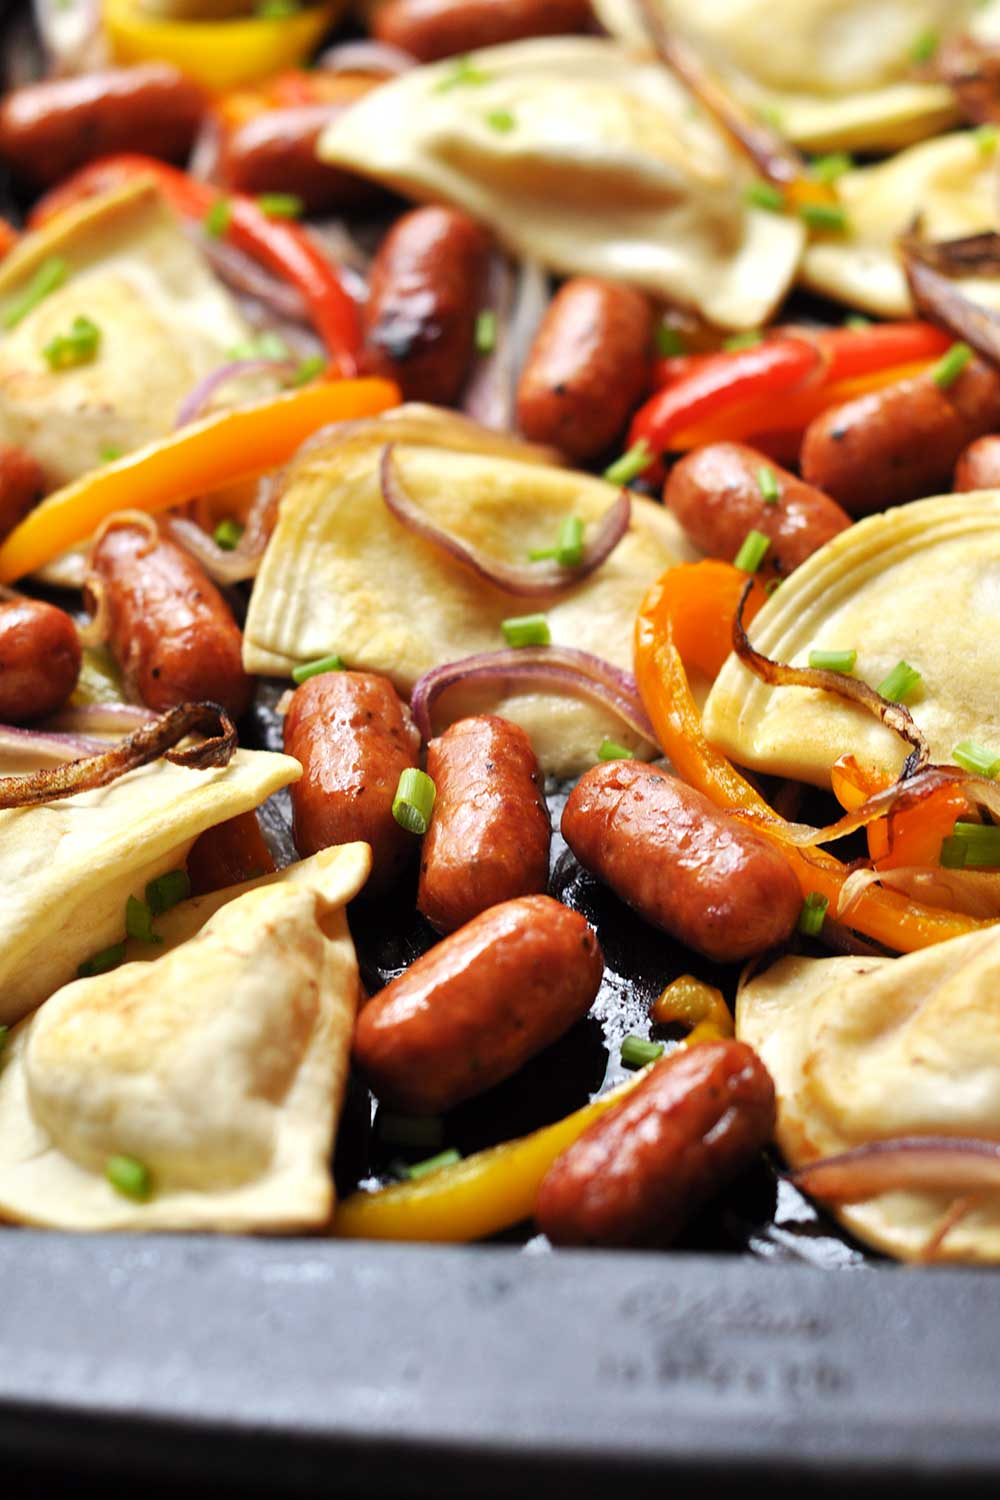 Sheet Pan Dinner: Pierogies and Kielbasa with Peppers and Onions